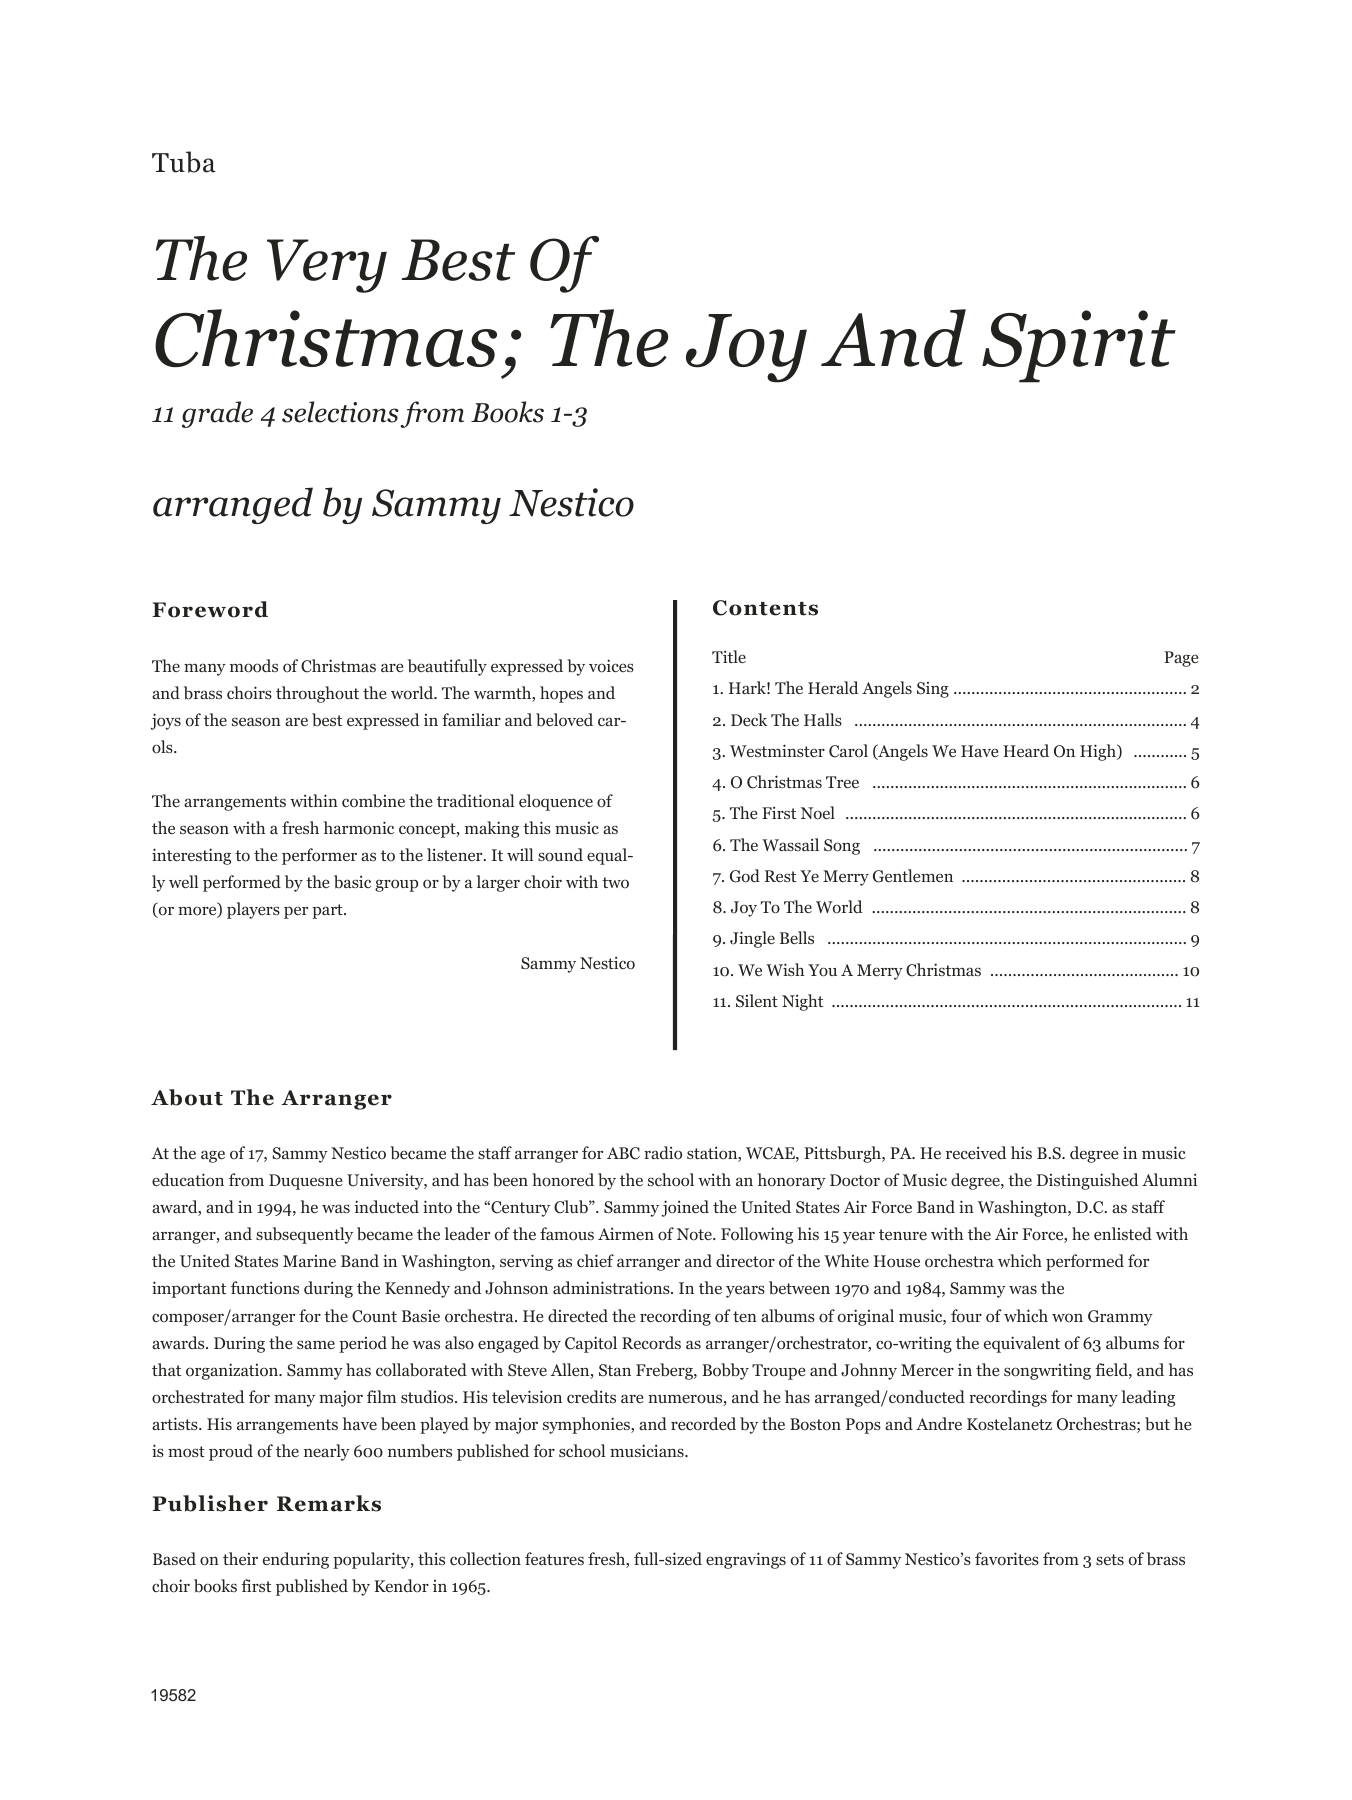 Very Best Of Christmas; The Joy And Spirit (Books 1-3) - Tuba Sheet Music